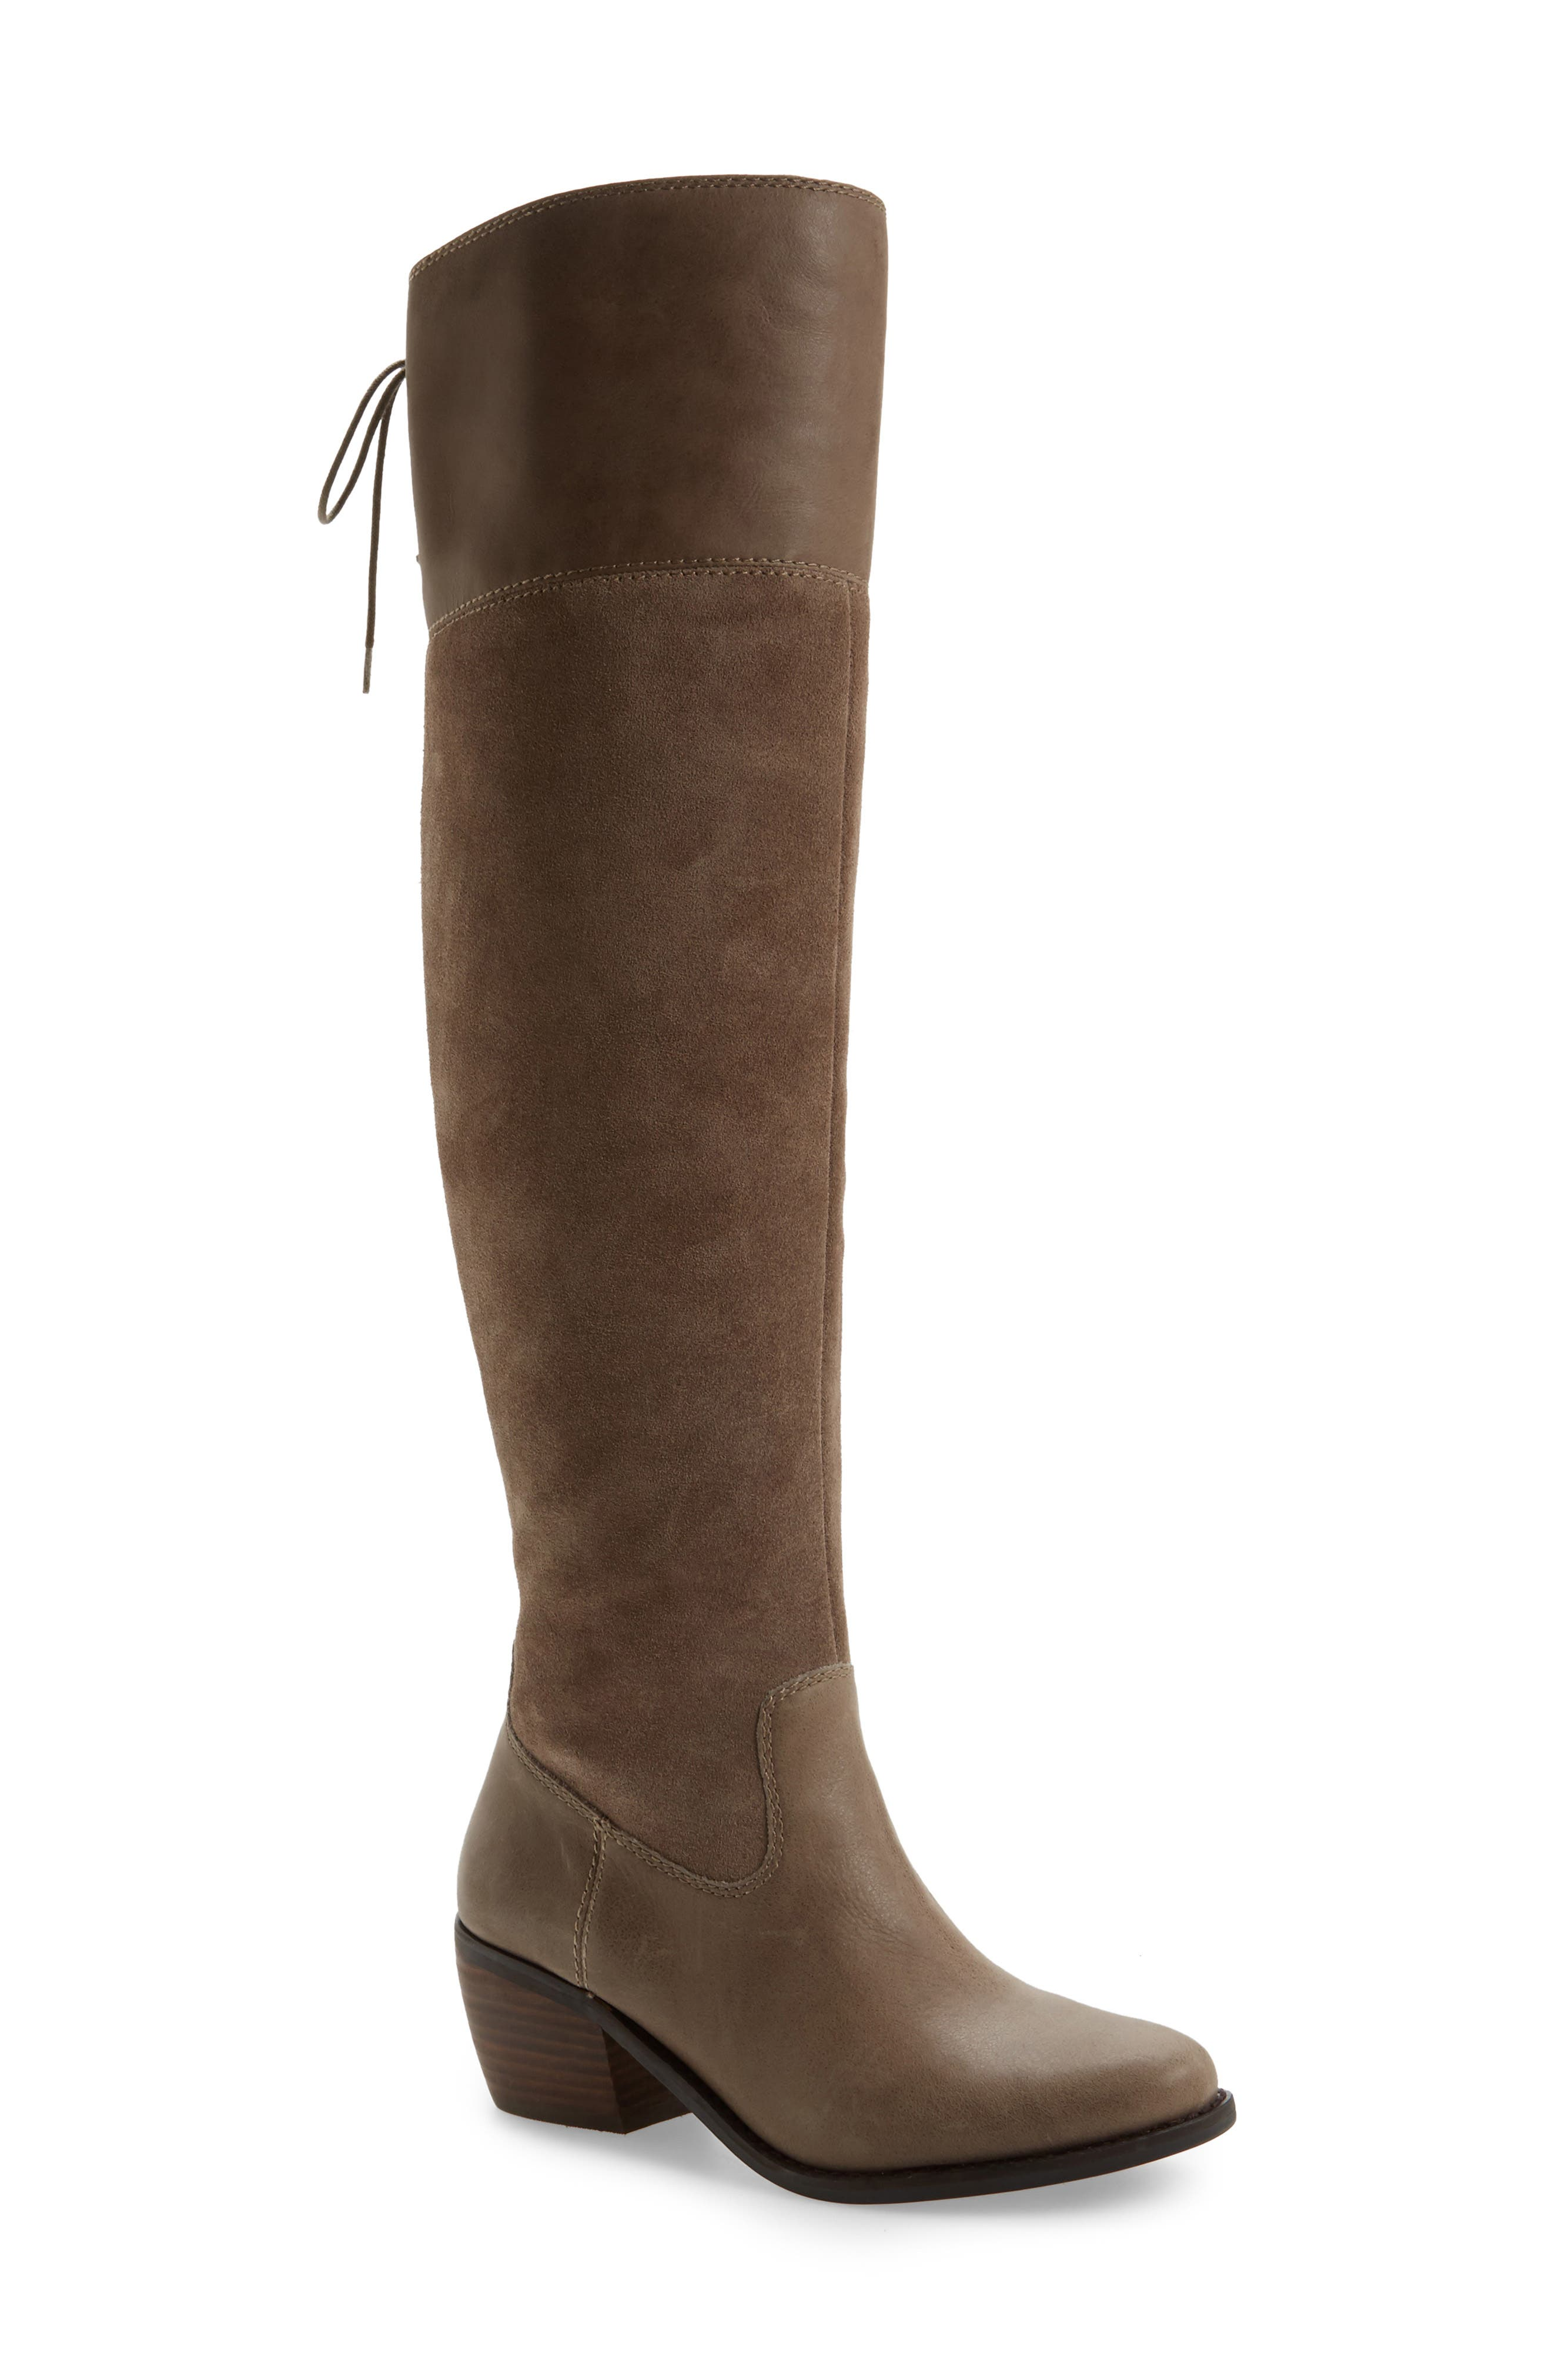 Komah Over the Knee Boot,                             Main thumbnail 1, color,                             Brindle Leather